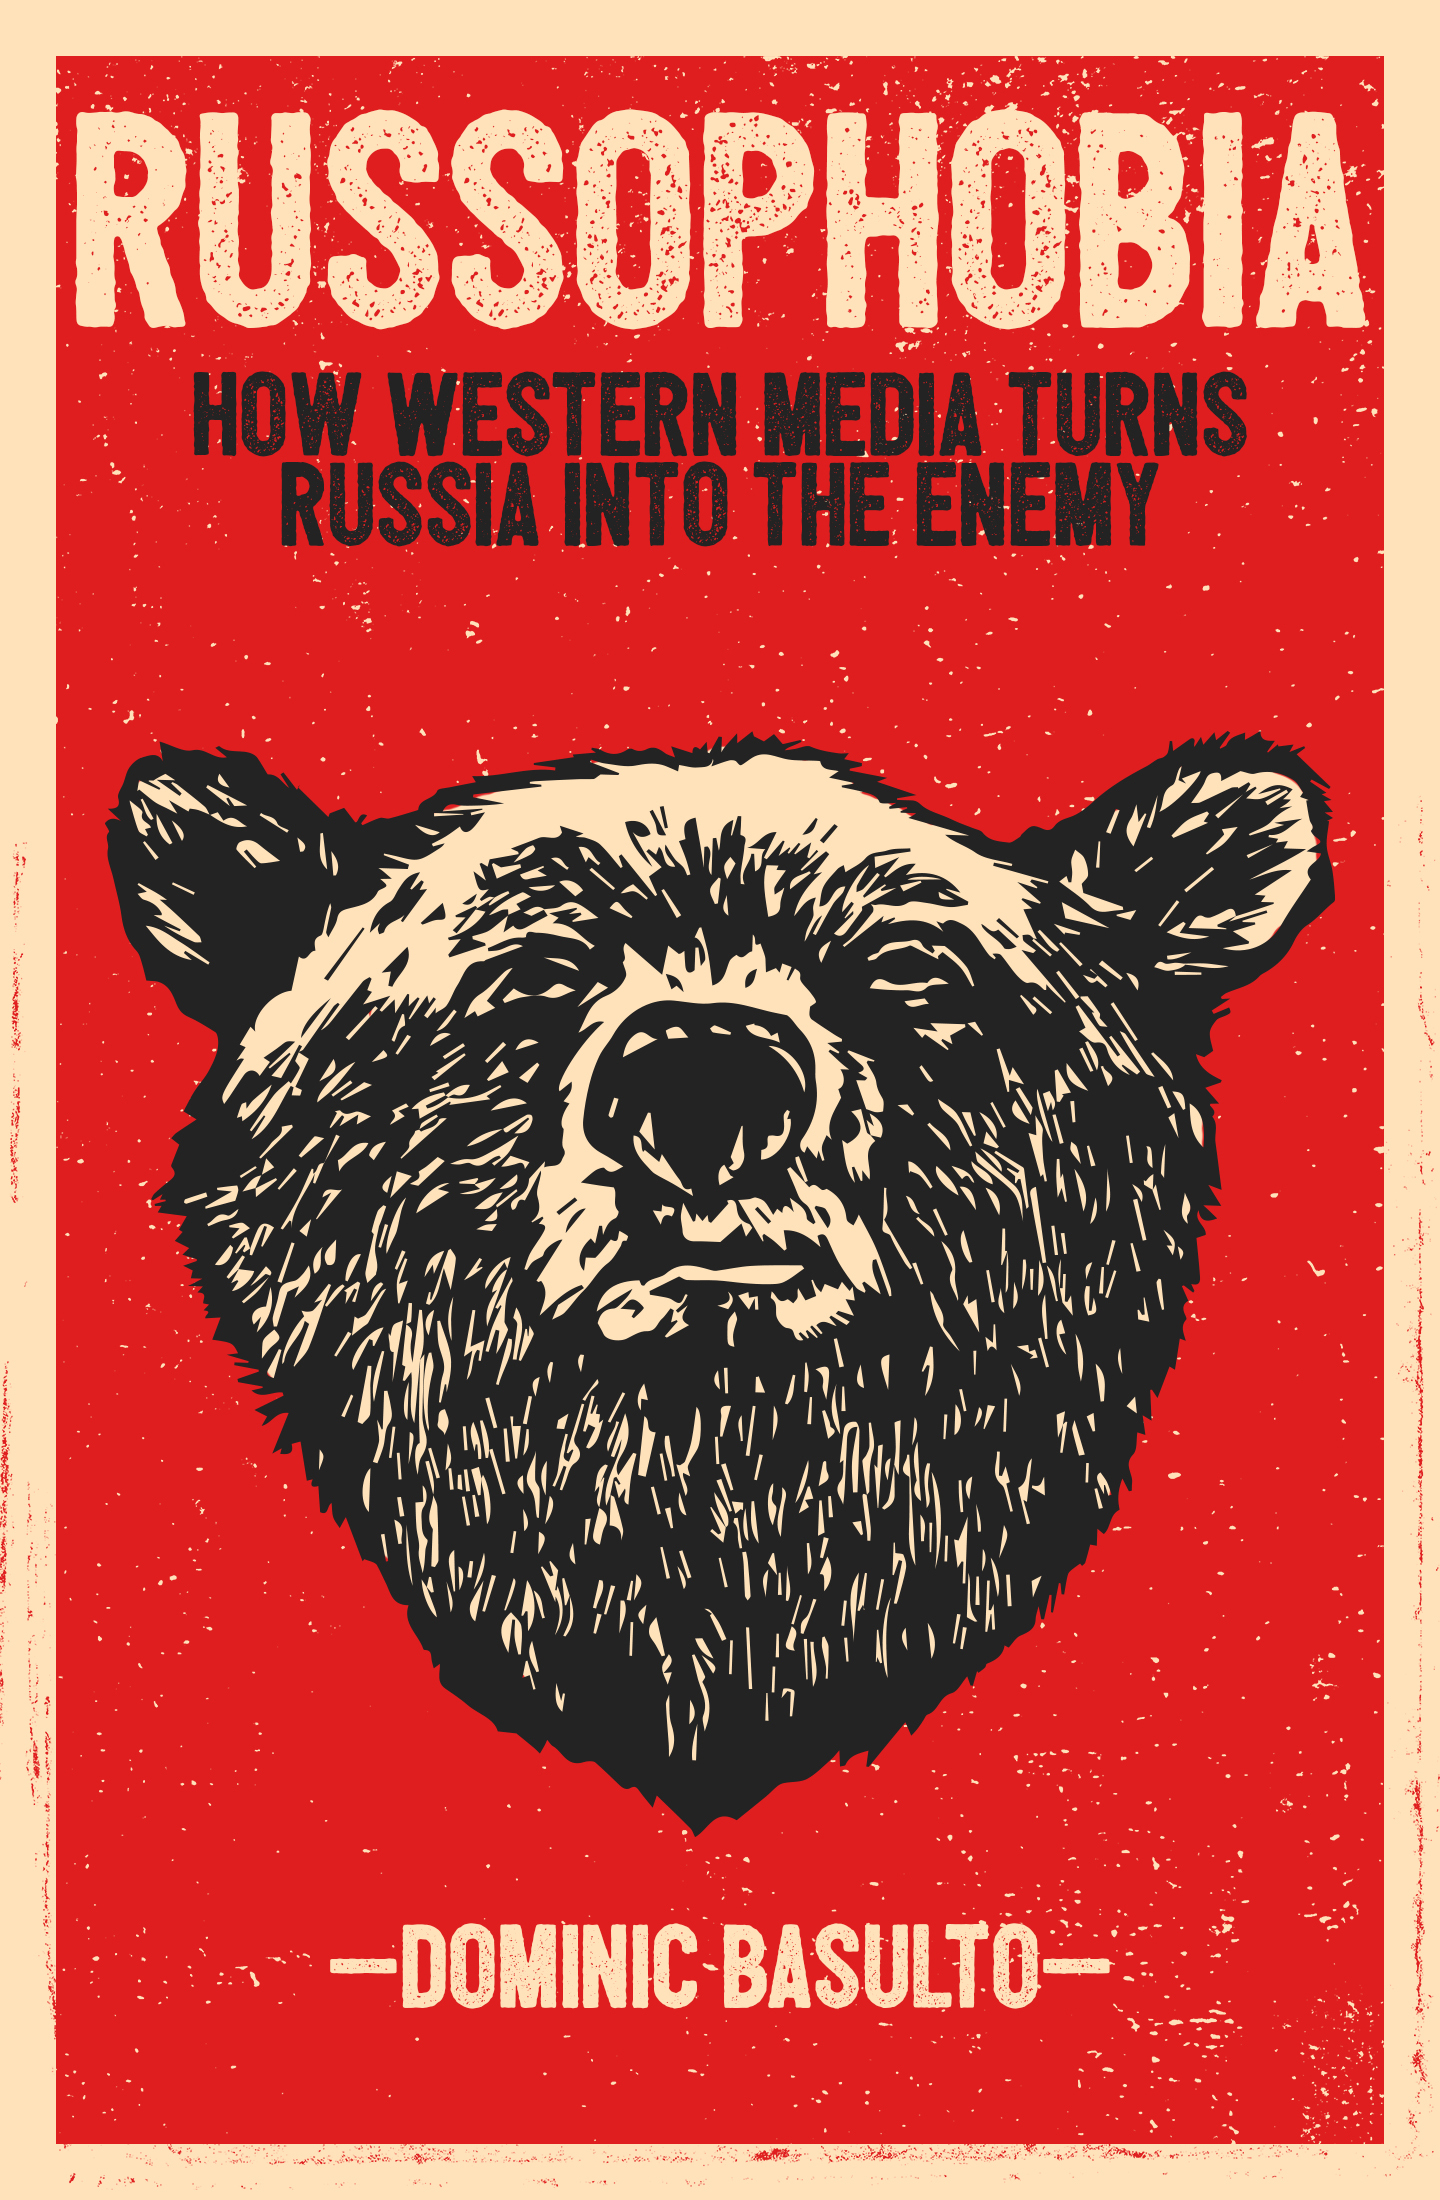 Russophobia: How Western Media Turns Russia Into the Enemy Dominic Basulto